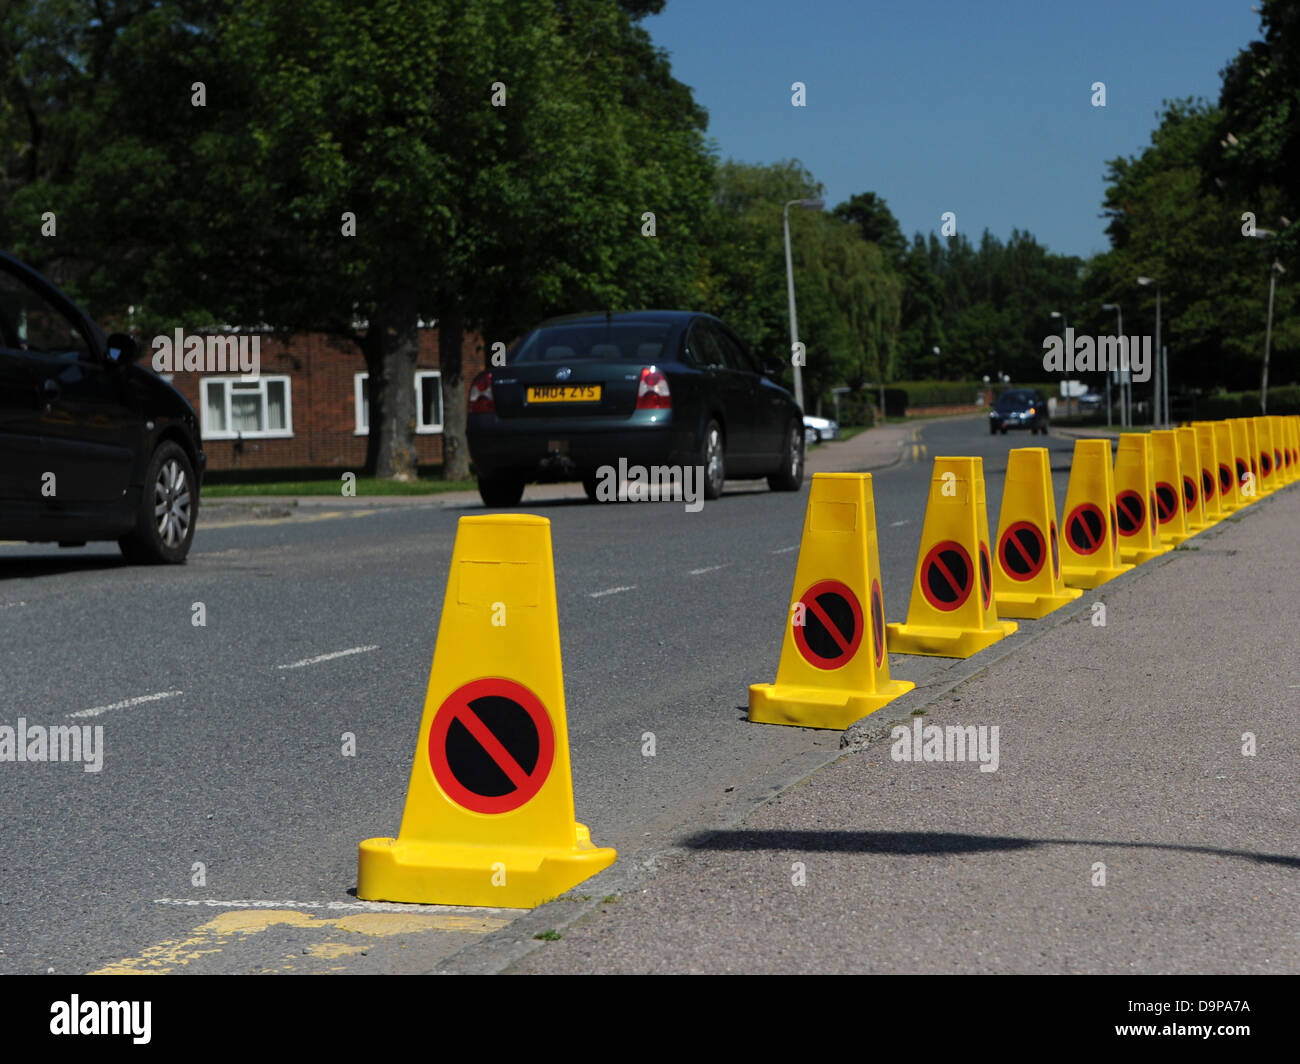 A line of no parking traffic cones on a main road. - Stock Image